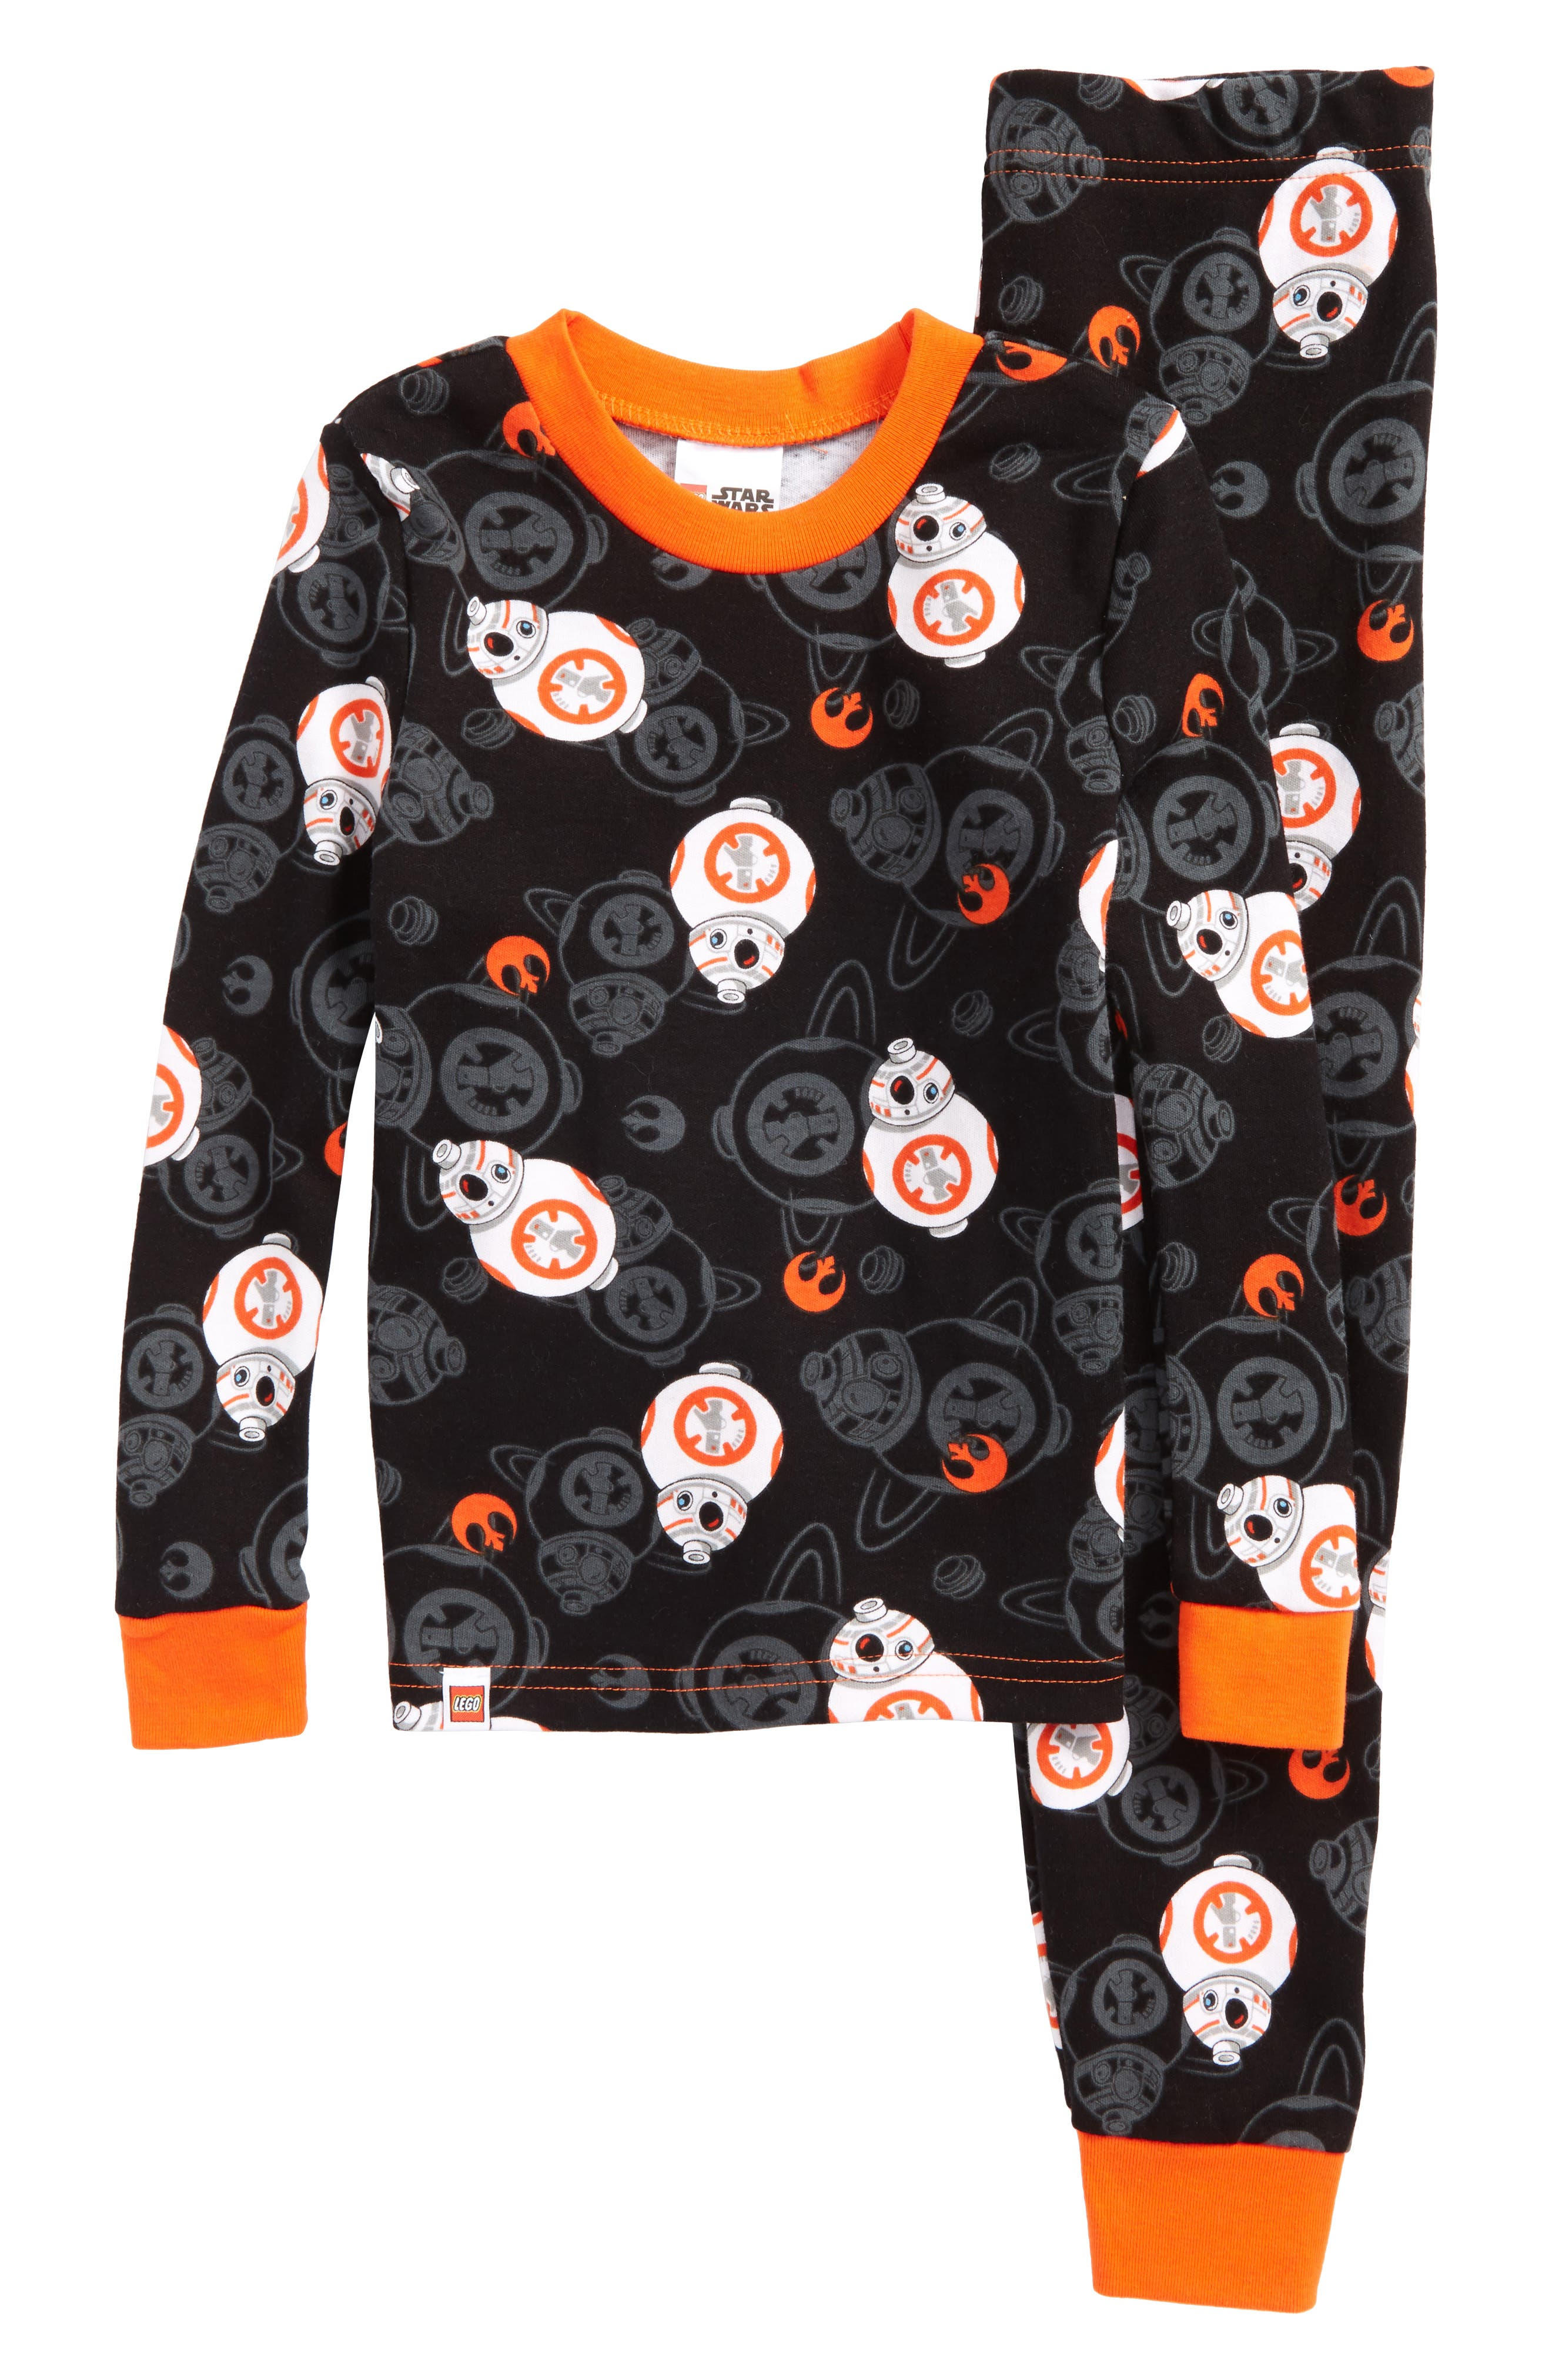 Lego Star Wars<sup>™</sup> BB-8 Fitted Two-Piece Cotton Pajama Set,                         Main,                         color, 001